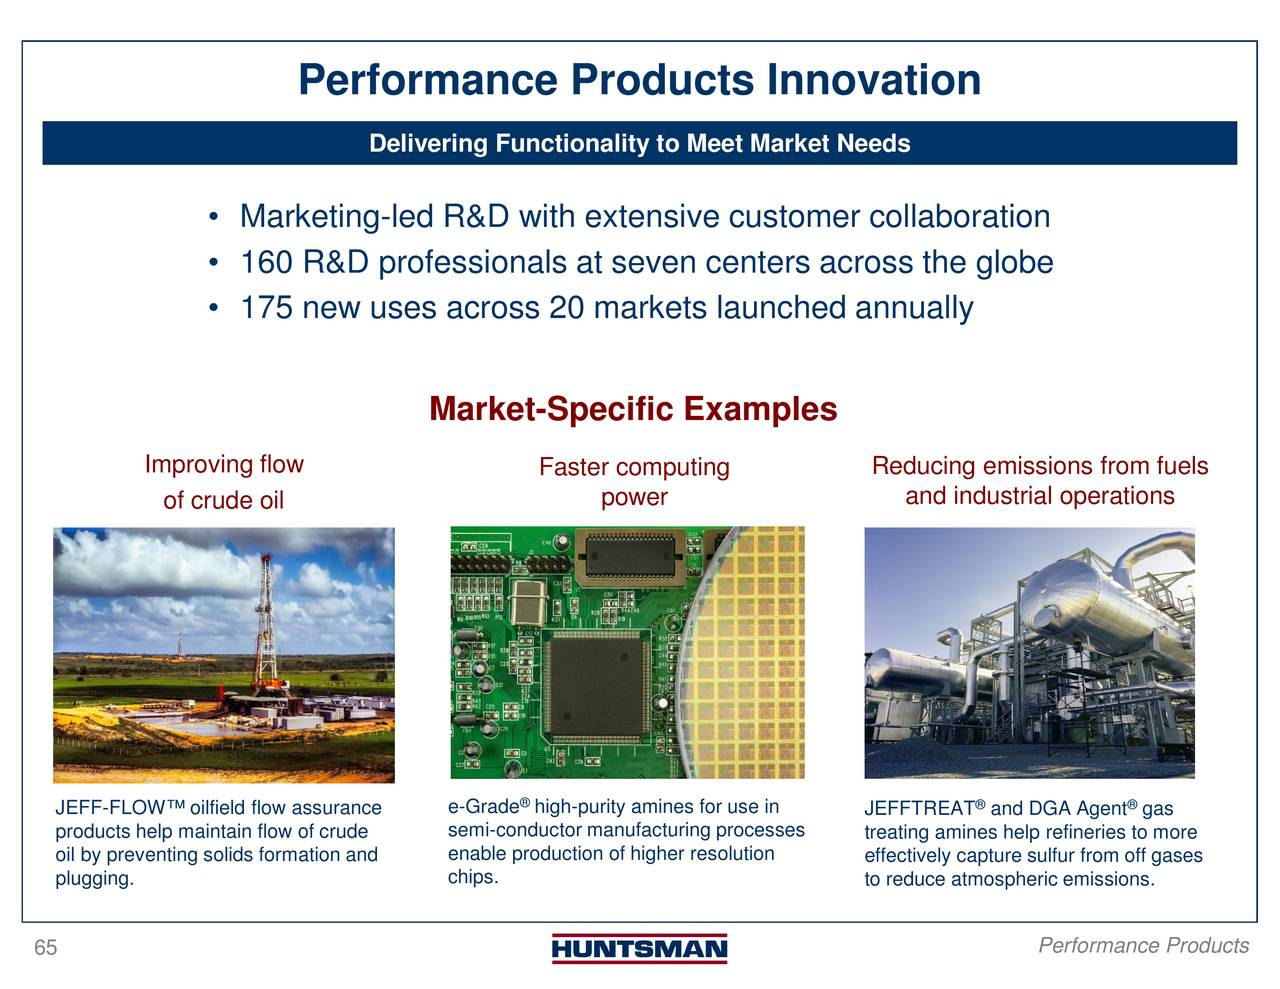 Huntsman (HUN) Investor Presentation - Slideshow - Huntsman